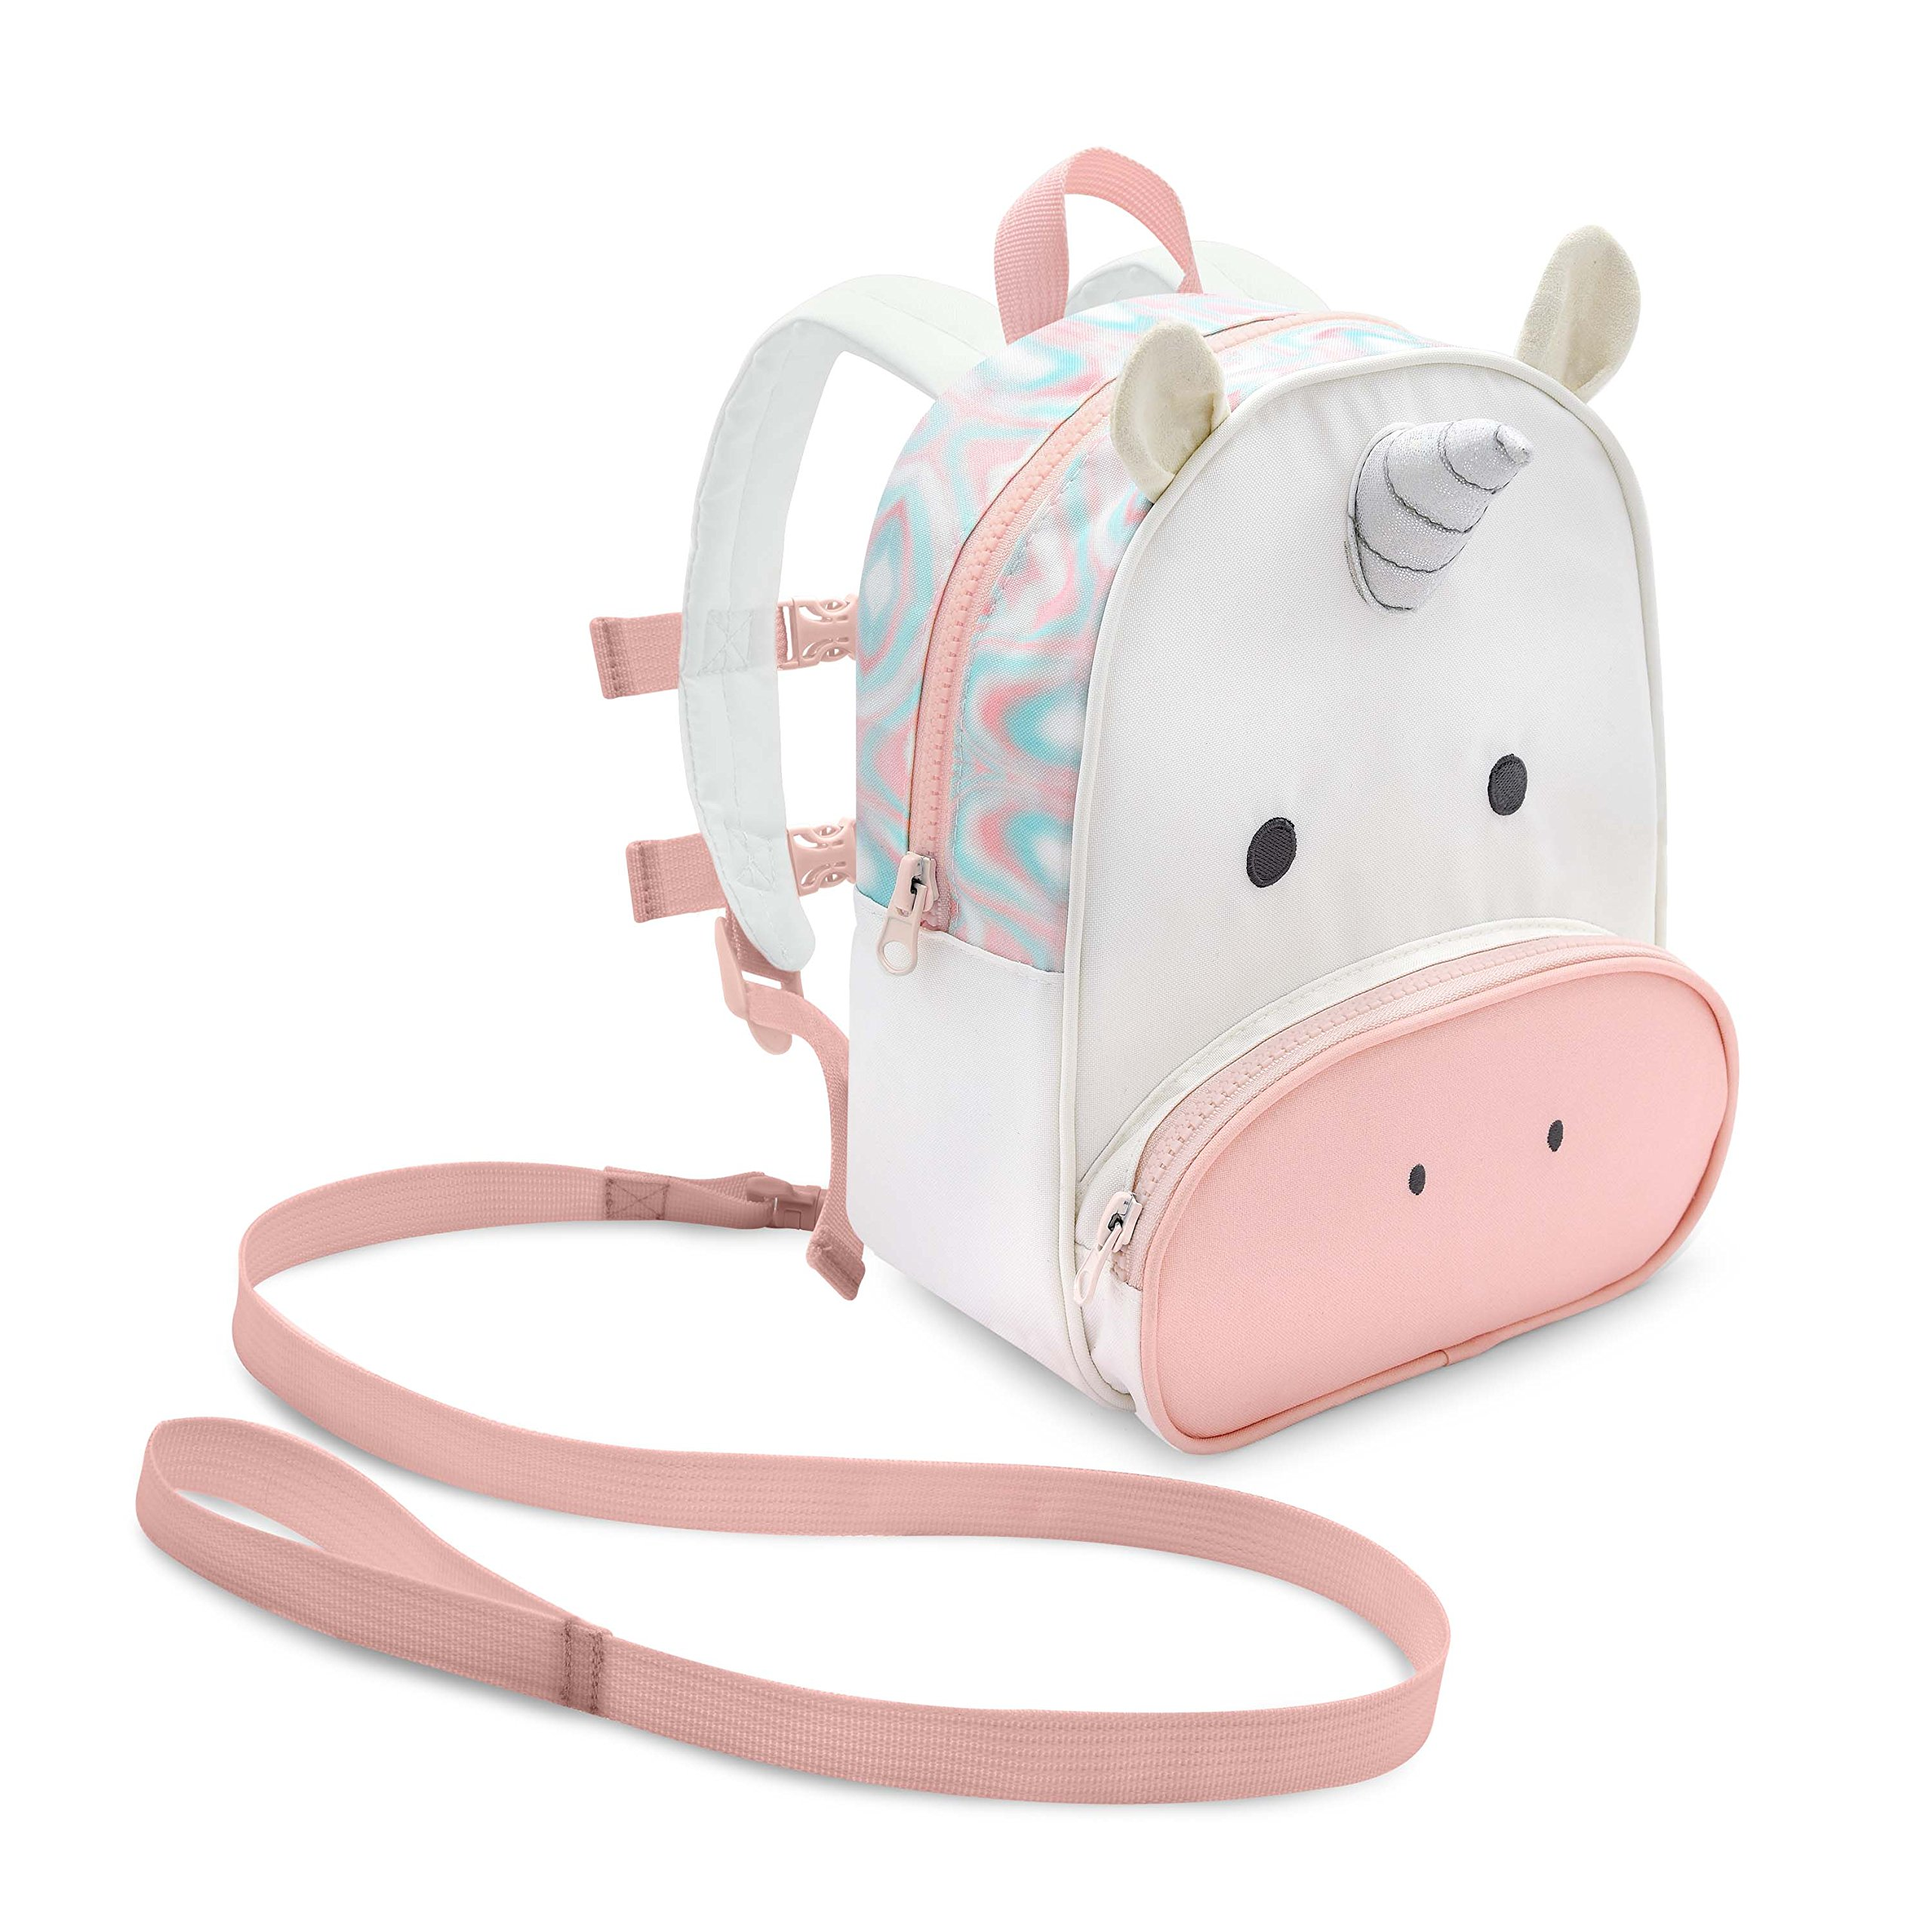 Travel Bug Toddler Safety Unicorn Backpack Harness with Removable Tether, Pink/White by Travel Bug (Image #1)